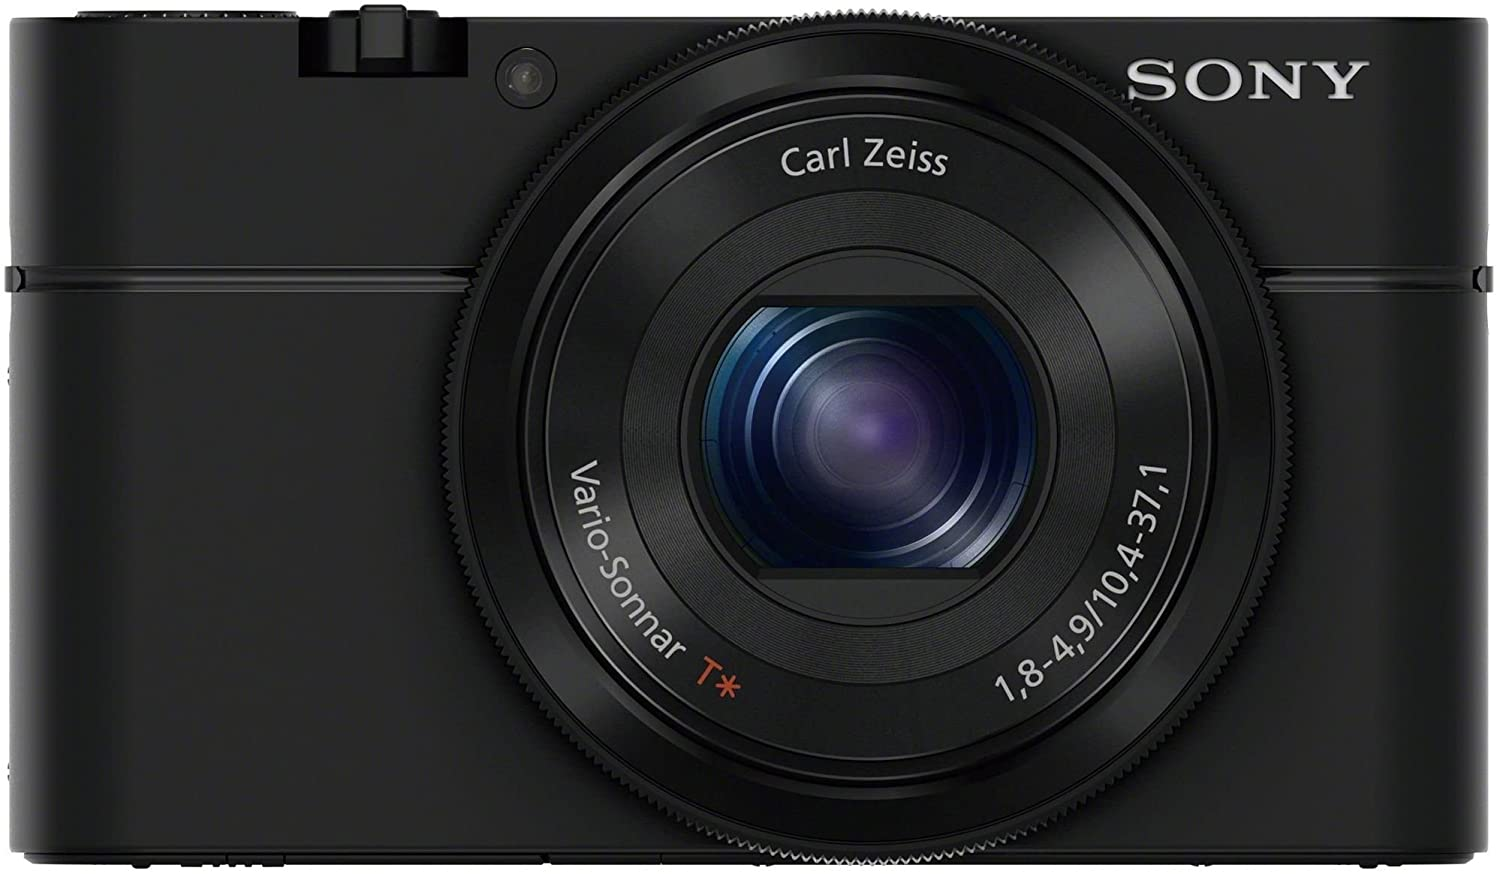 Sony Cybershot DSC-RX100 20.2MP Digital Camera with 3.6X Optical Zoom (Black)